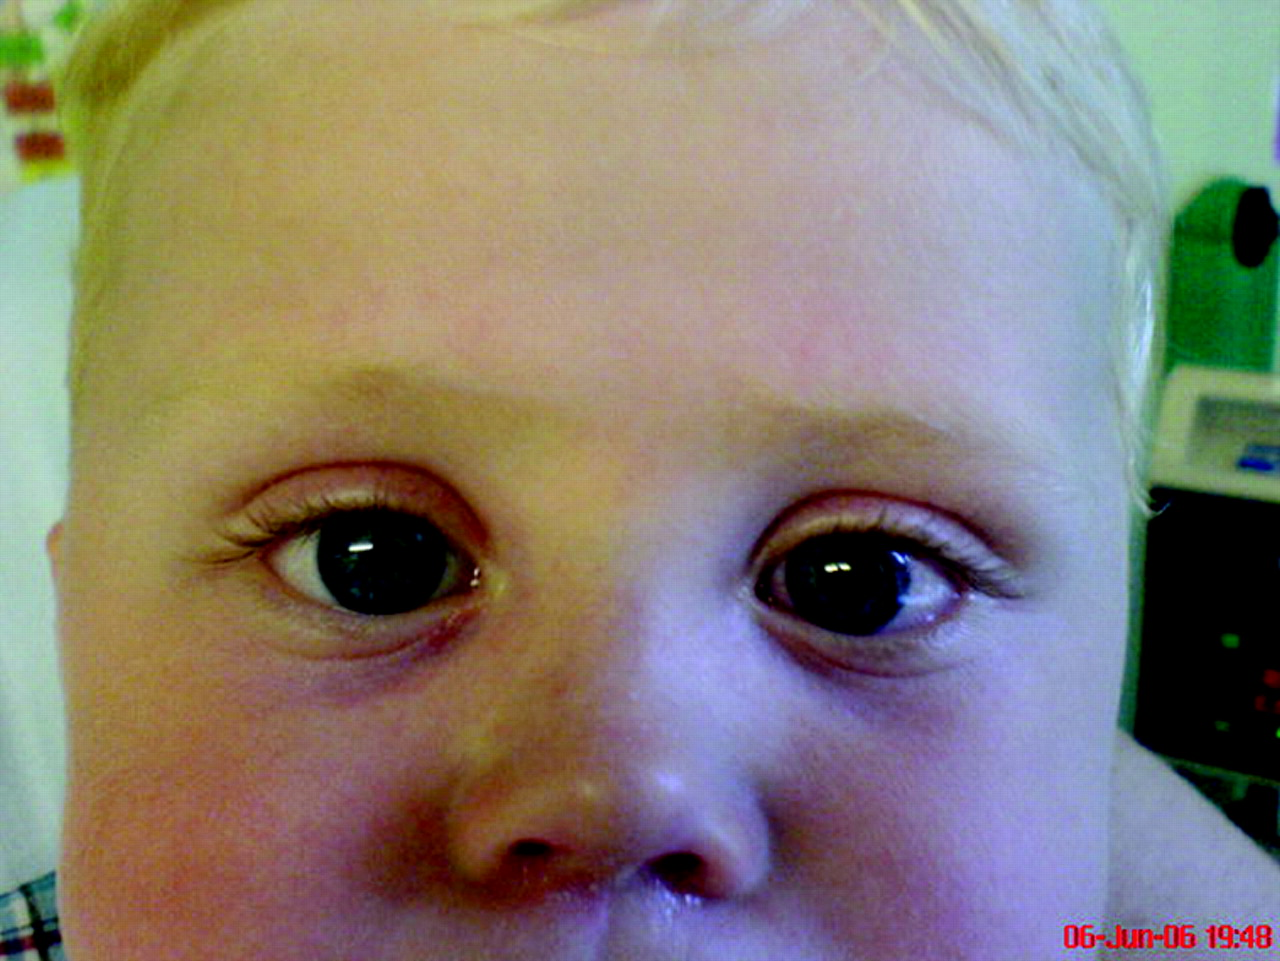 Unilateral fixed dilated pupil in a well child | Archives ...